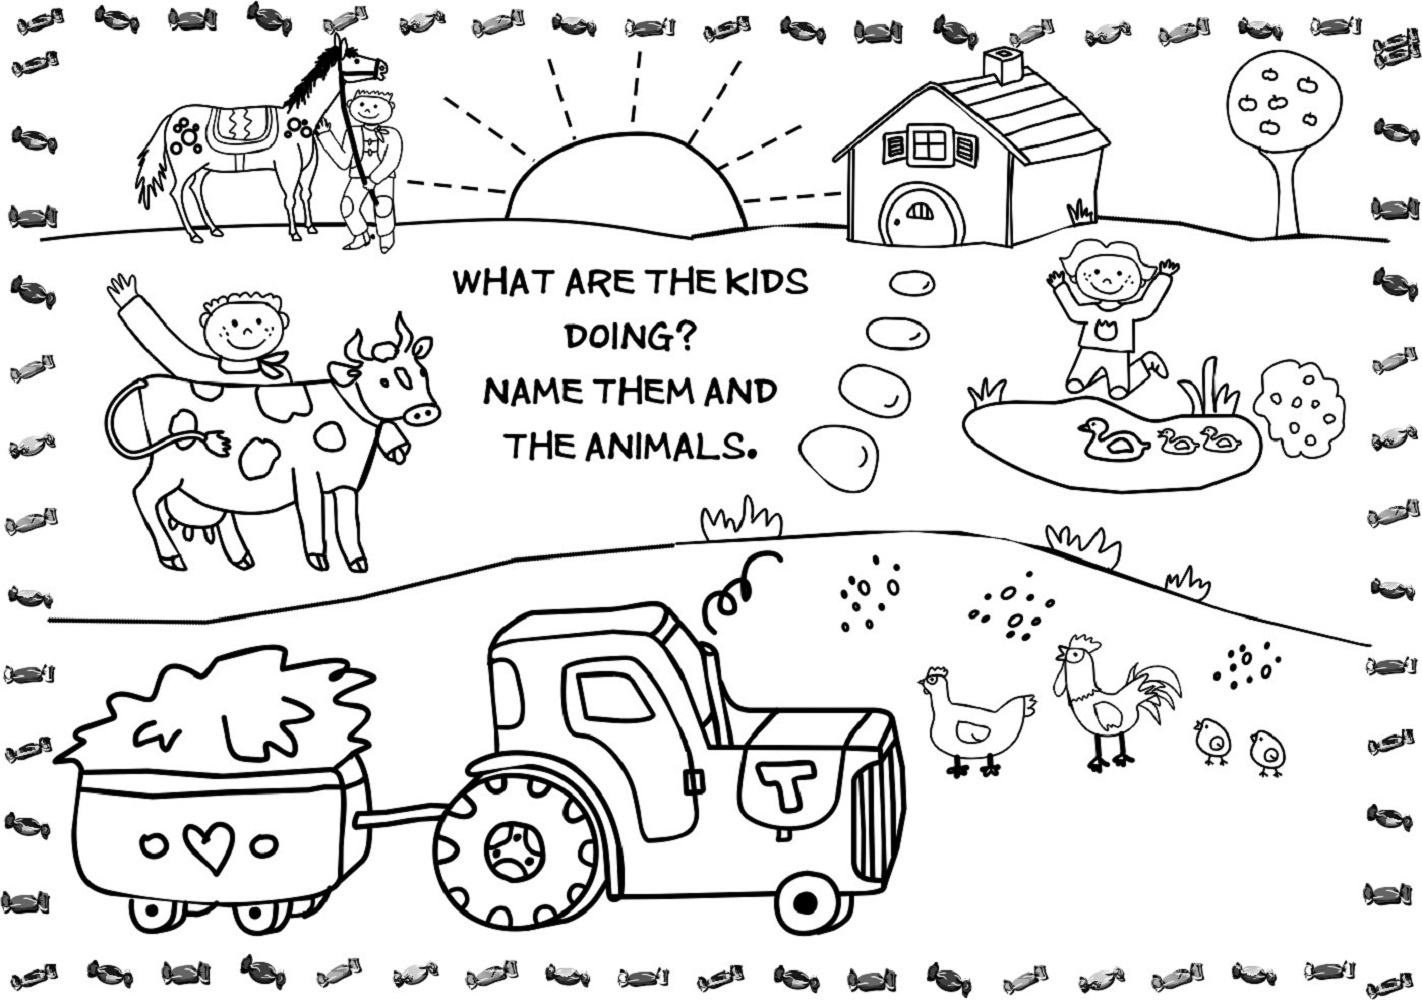 Free Printable Kids Activities 5 #28661 - Free Printable Activity Sheets For Kids